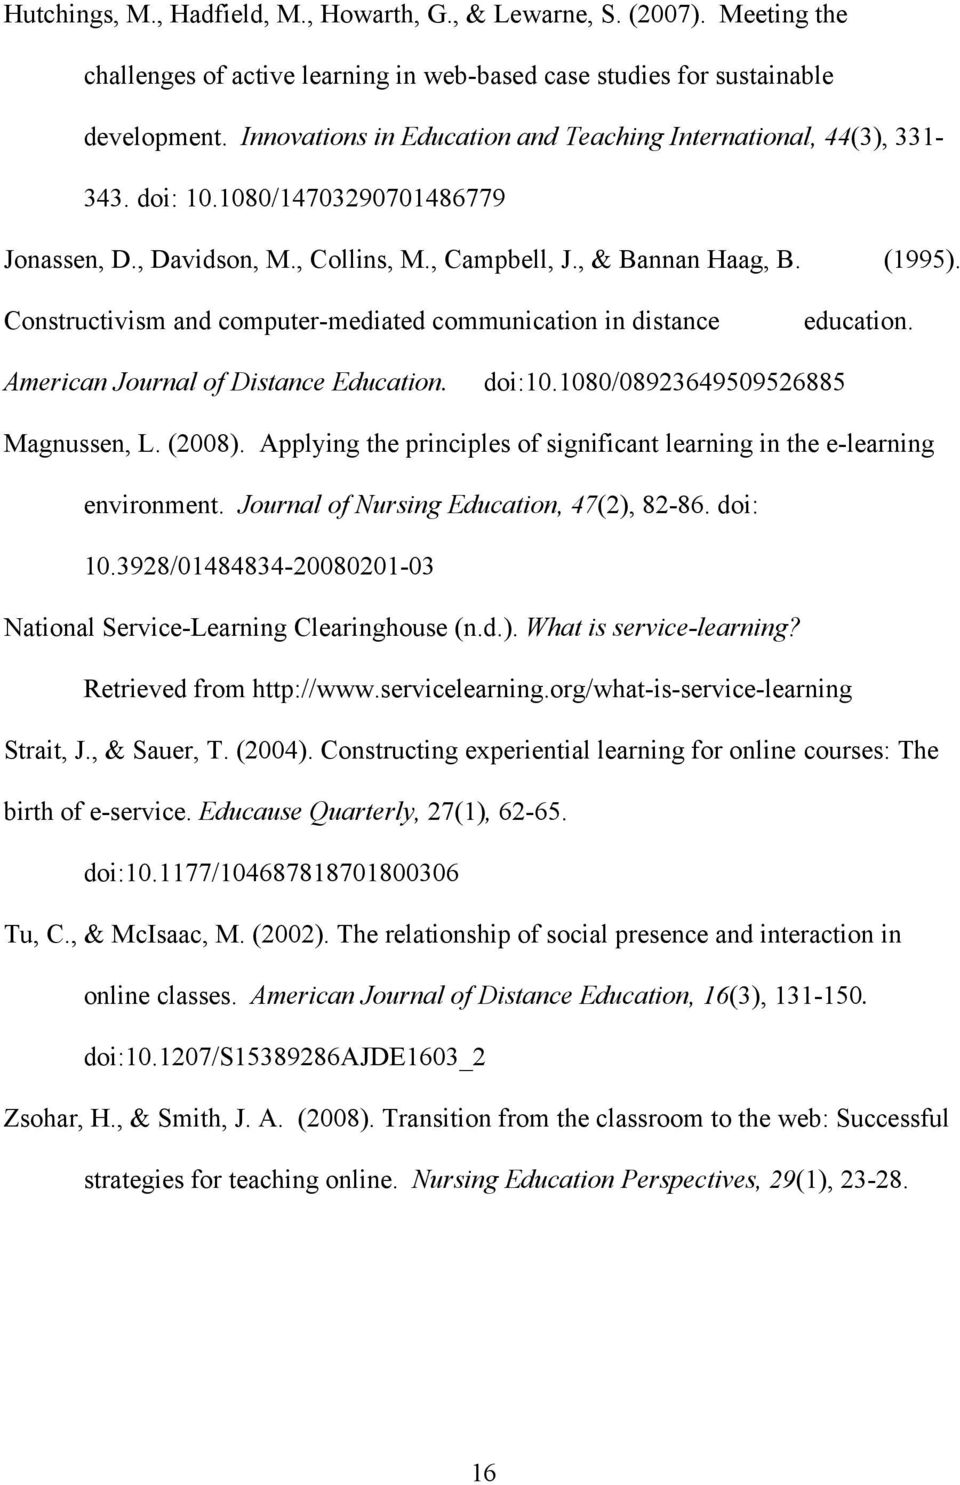 Constructivism and computer-mediated communication in distance education. American Journal of Distance Education. doi:10.1080/08923649509526885 Magnussen, L. (2008).